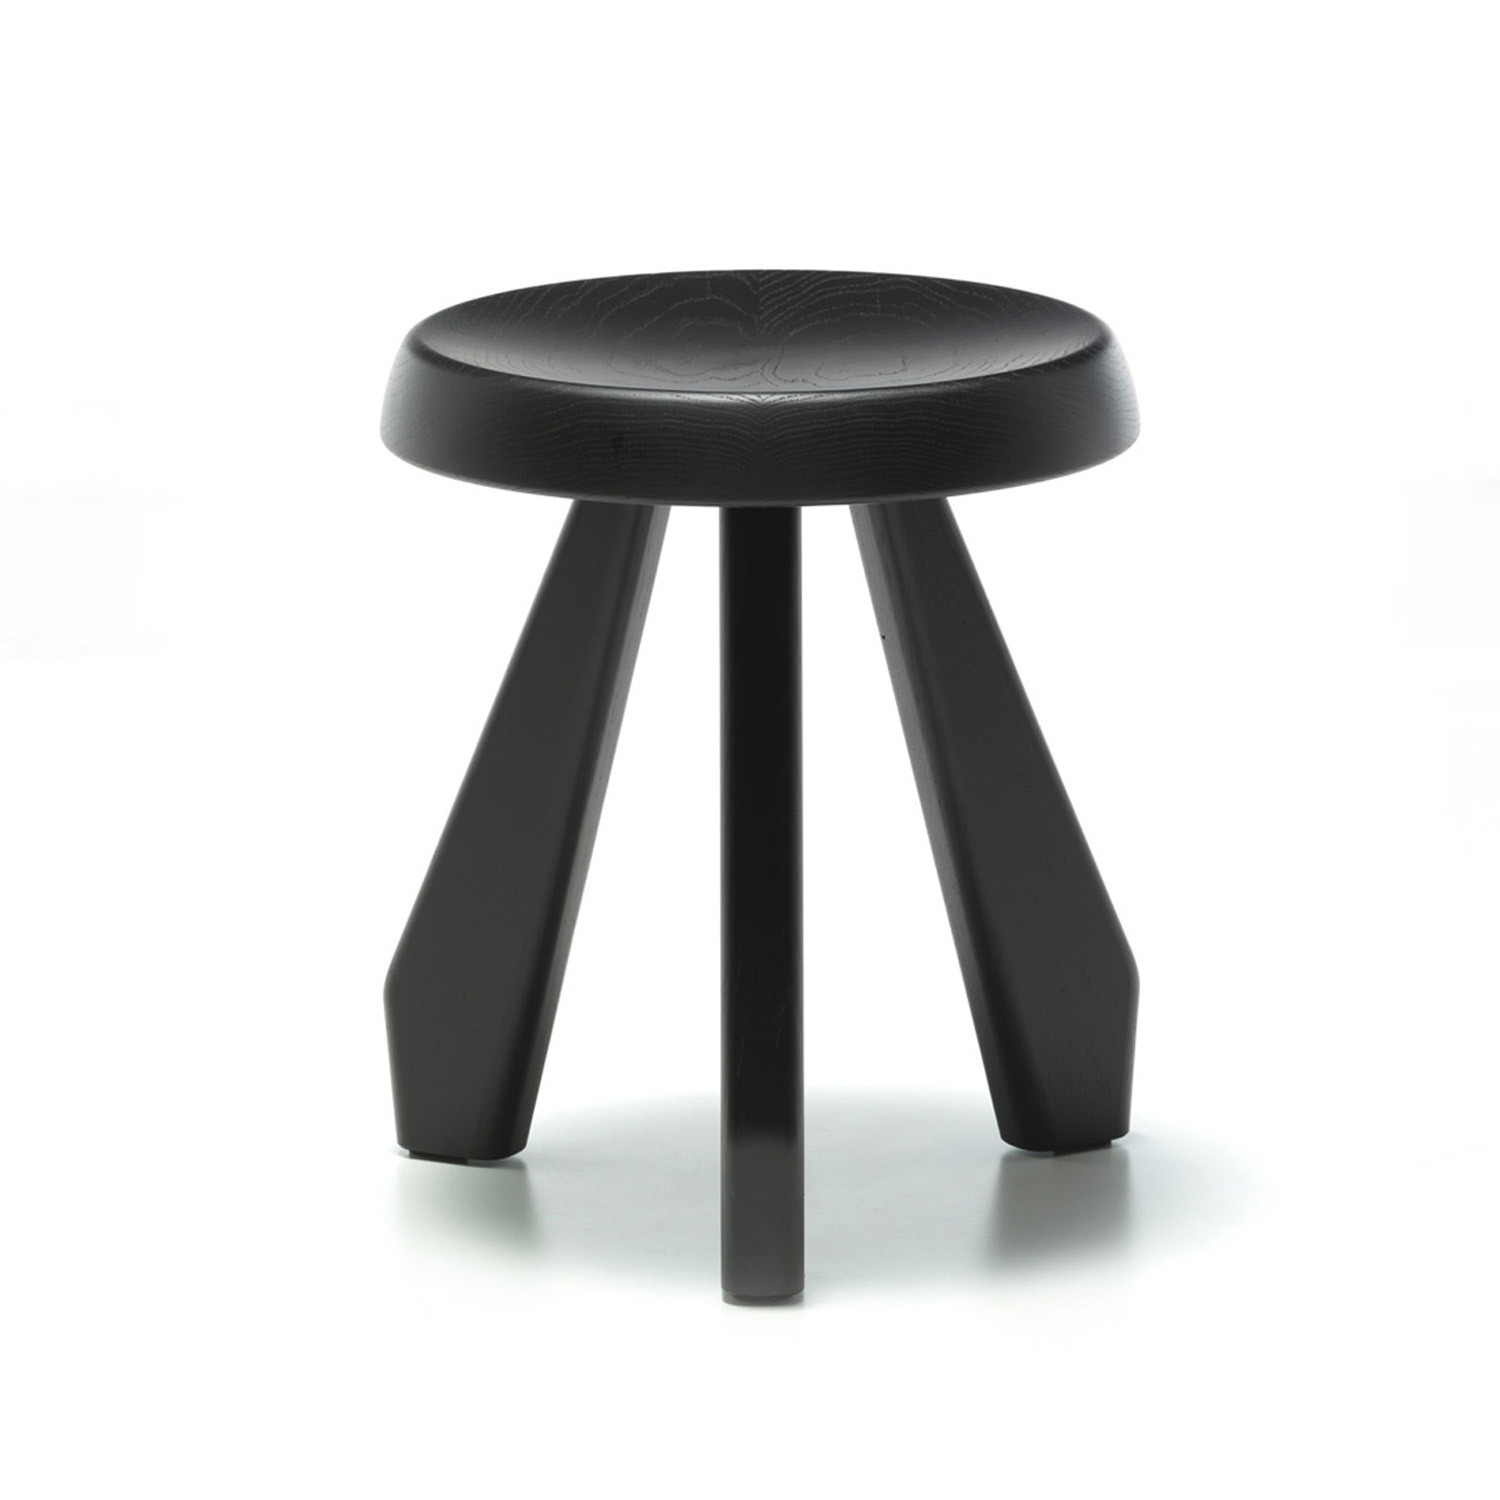 523 tabouret m ribel stool classic furniture apres furniture. Black Bedroom Furniture Sets. Home Design Ideas